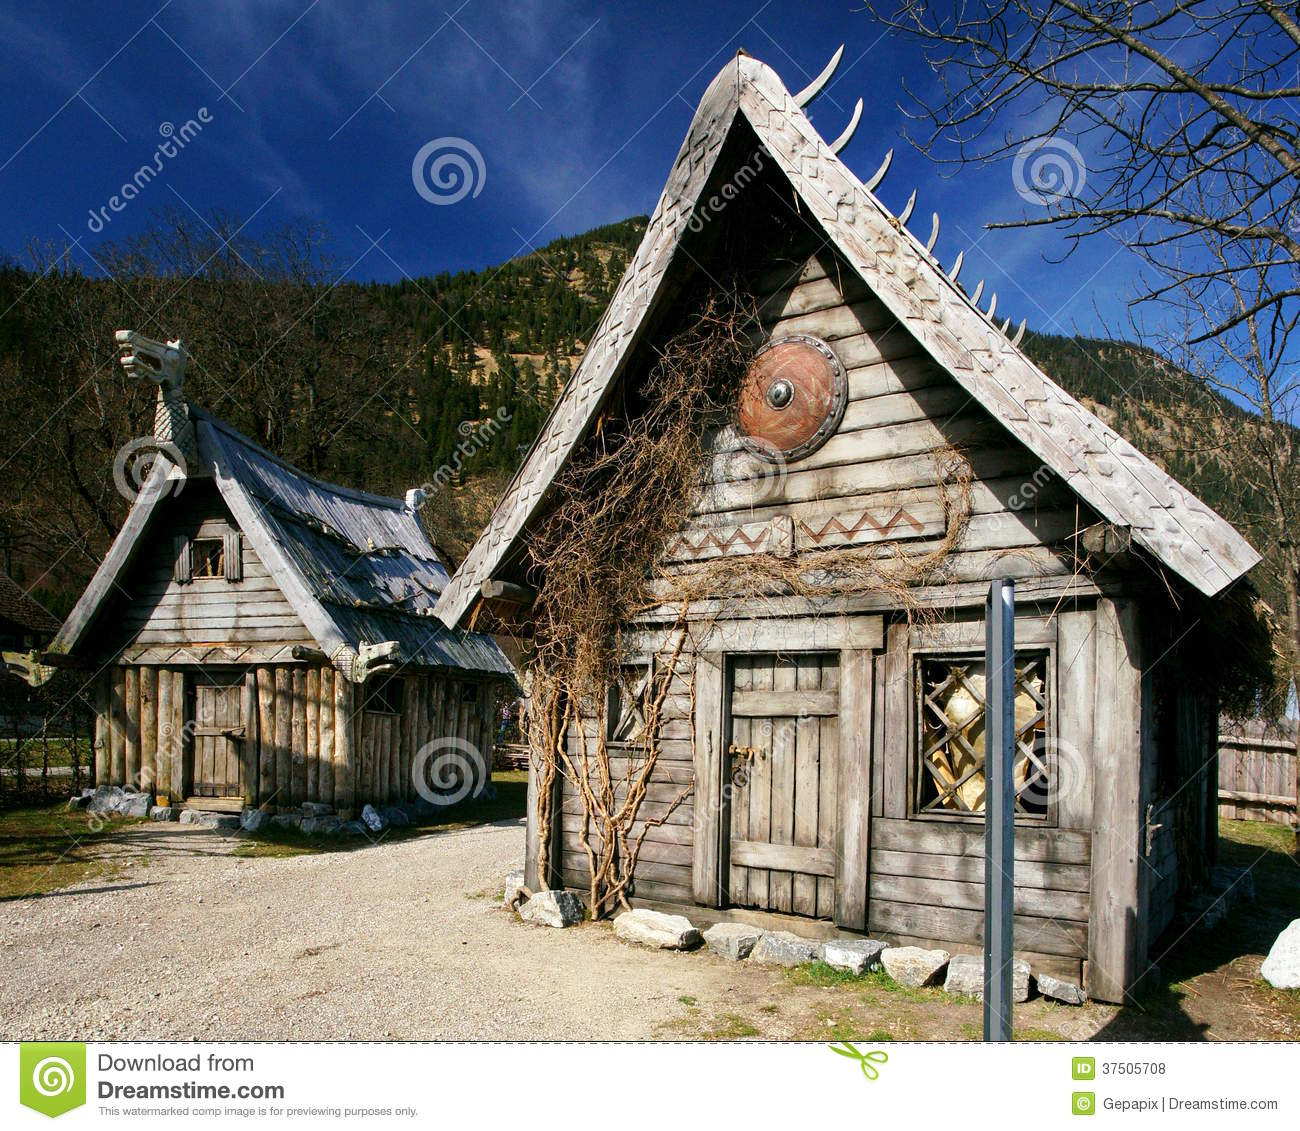 1000+ Images About Medieval Houses And Peasants On